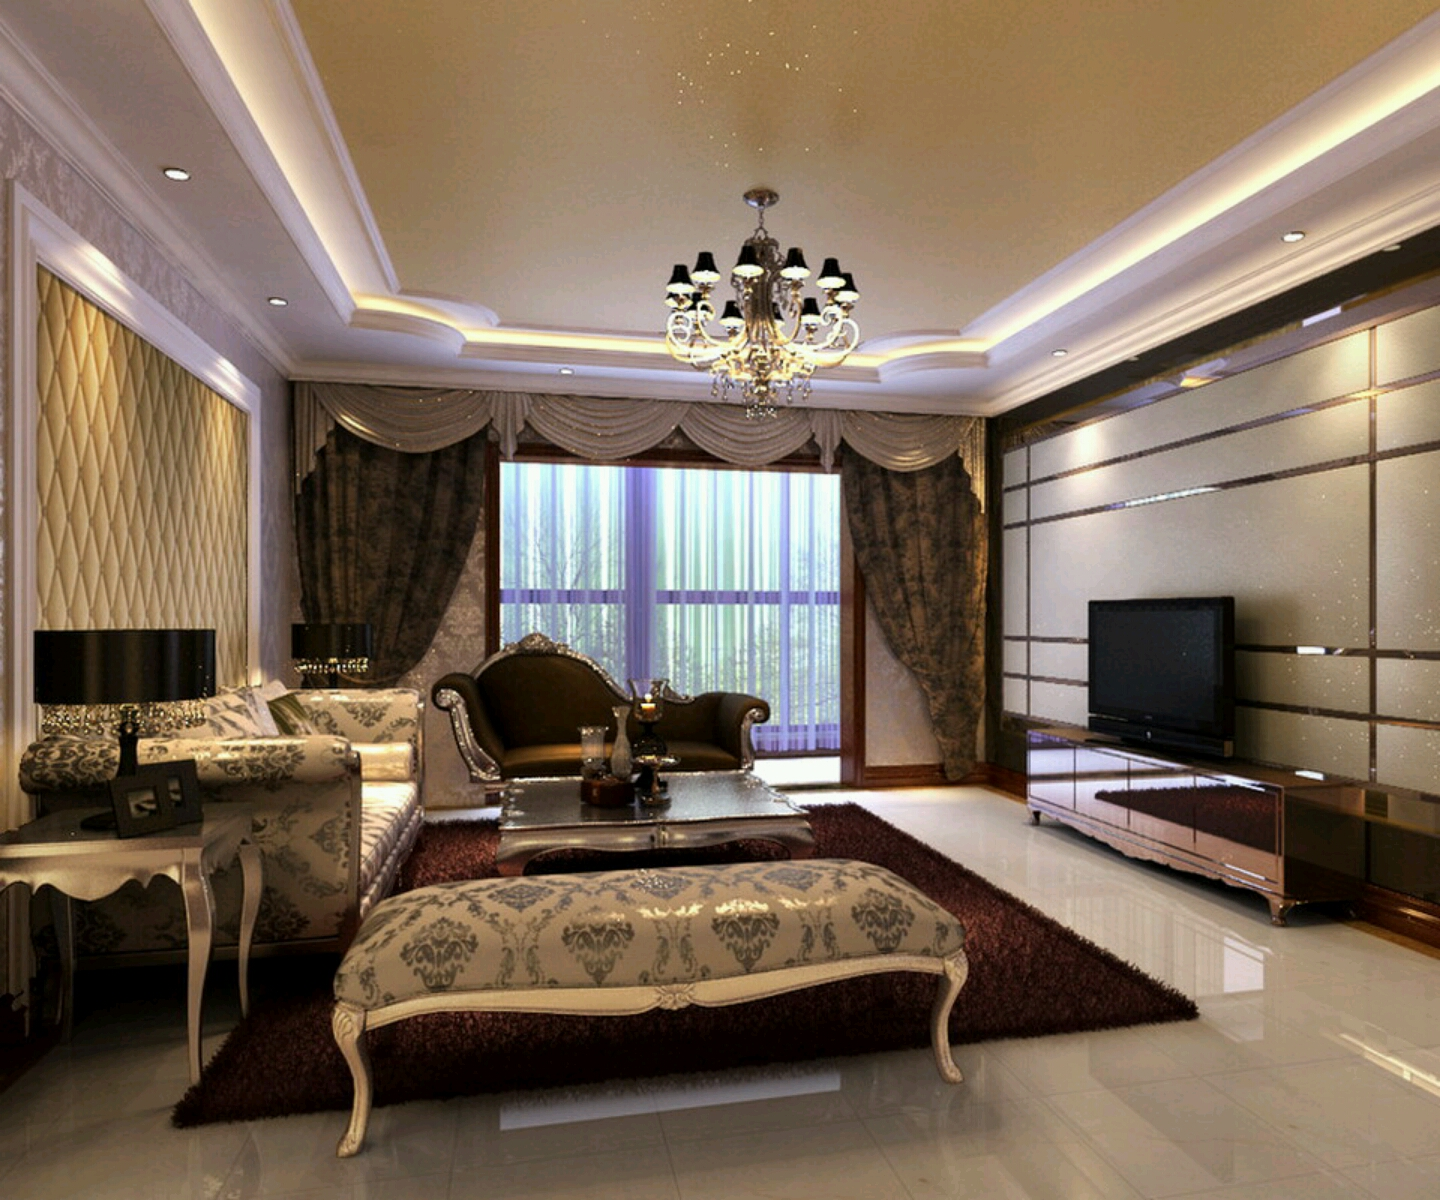 New home designs latest luxury homes interior decoration for Decoration living room ideas